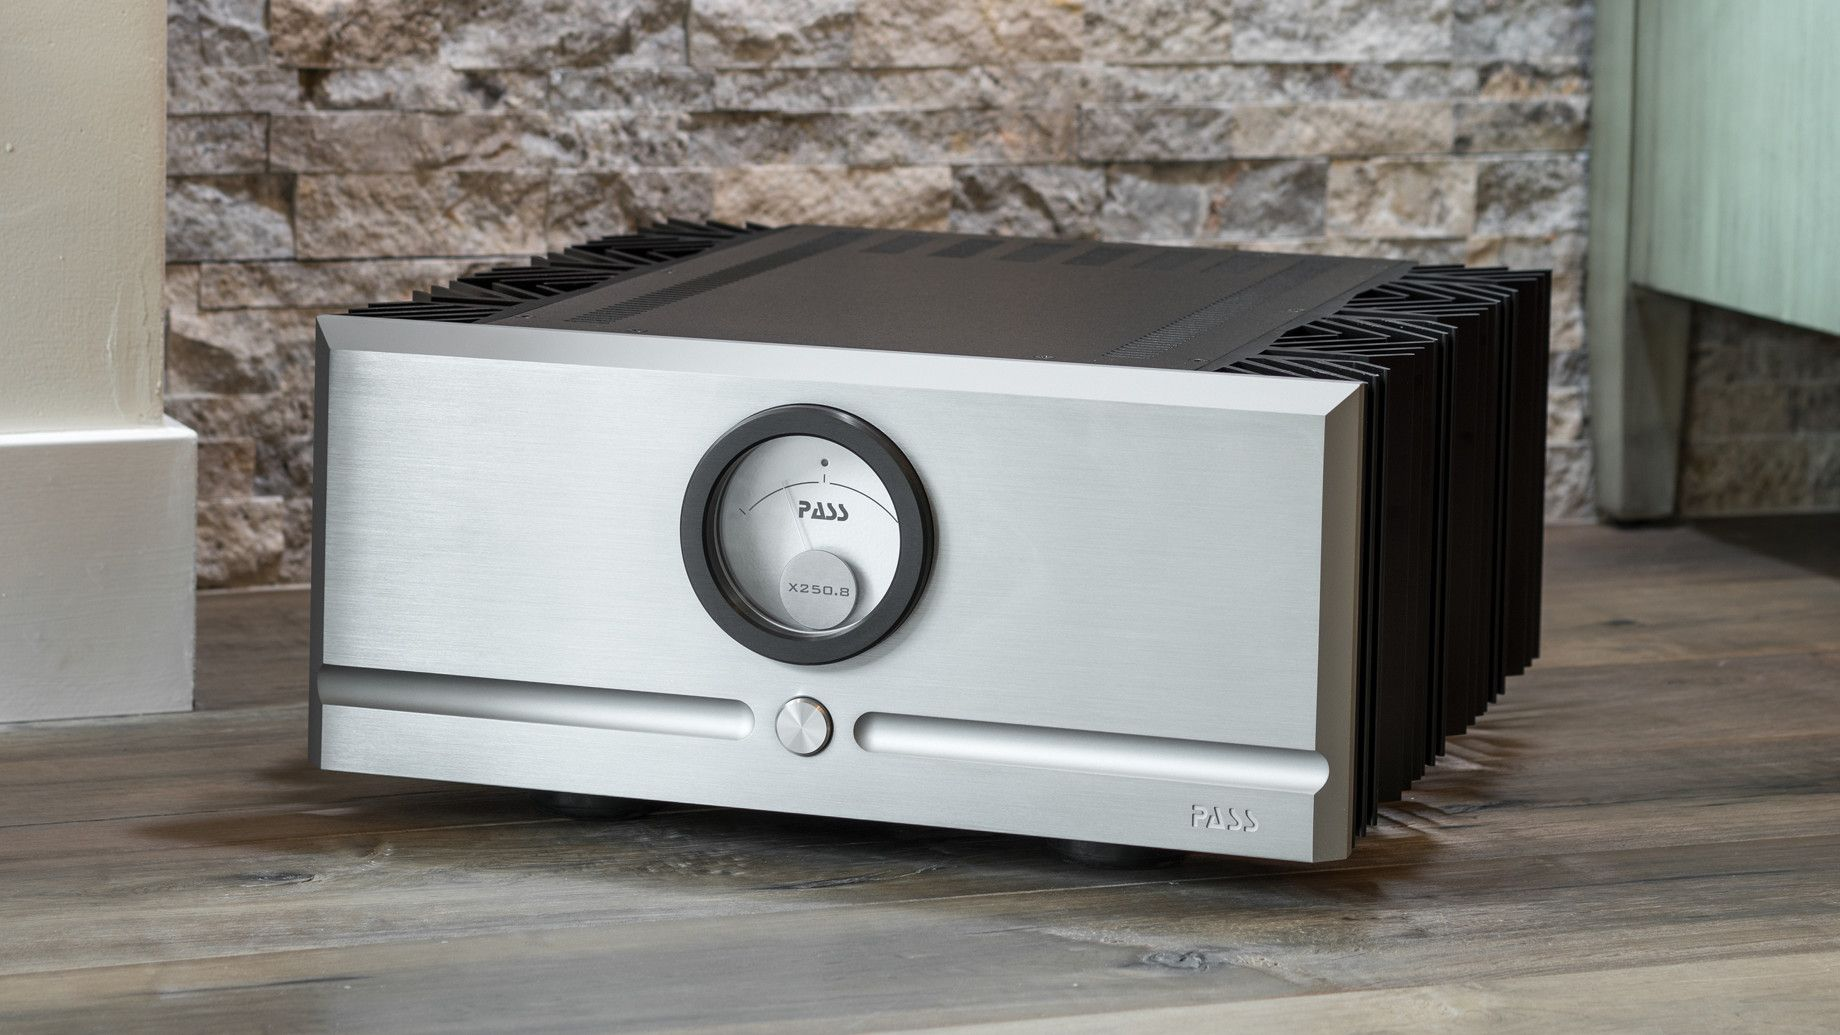 PASS LABS X250.8 AMPLIFIER   This stereo class A/B model represents a step up in power and performance from the X150.8 and, like all of our products, has been painstakingly designed, tweaked, redesigned and fine-tuned to deliver maximum musical enjoyment...